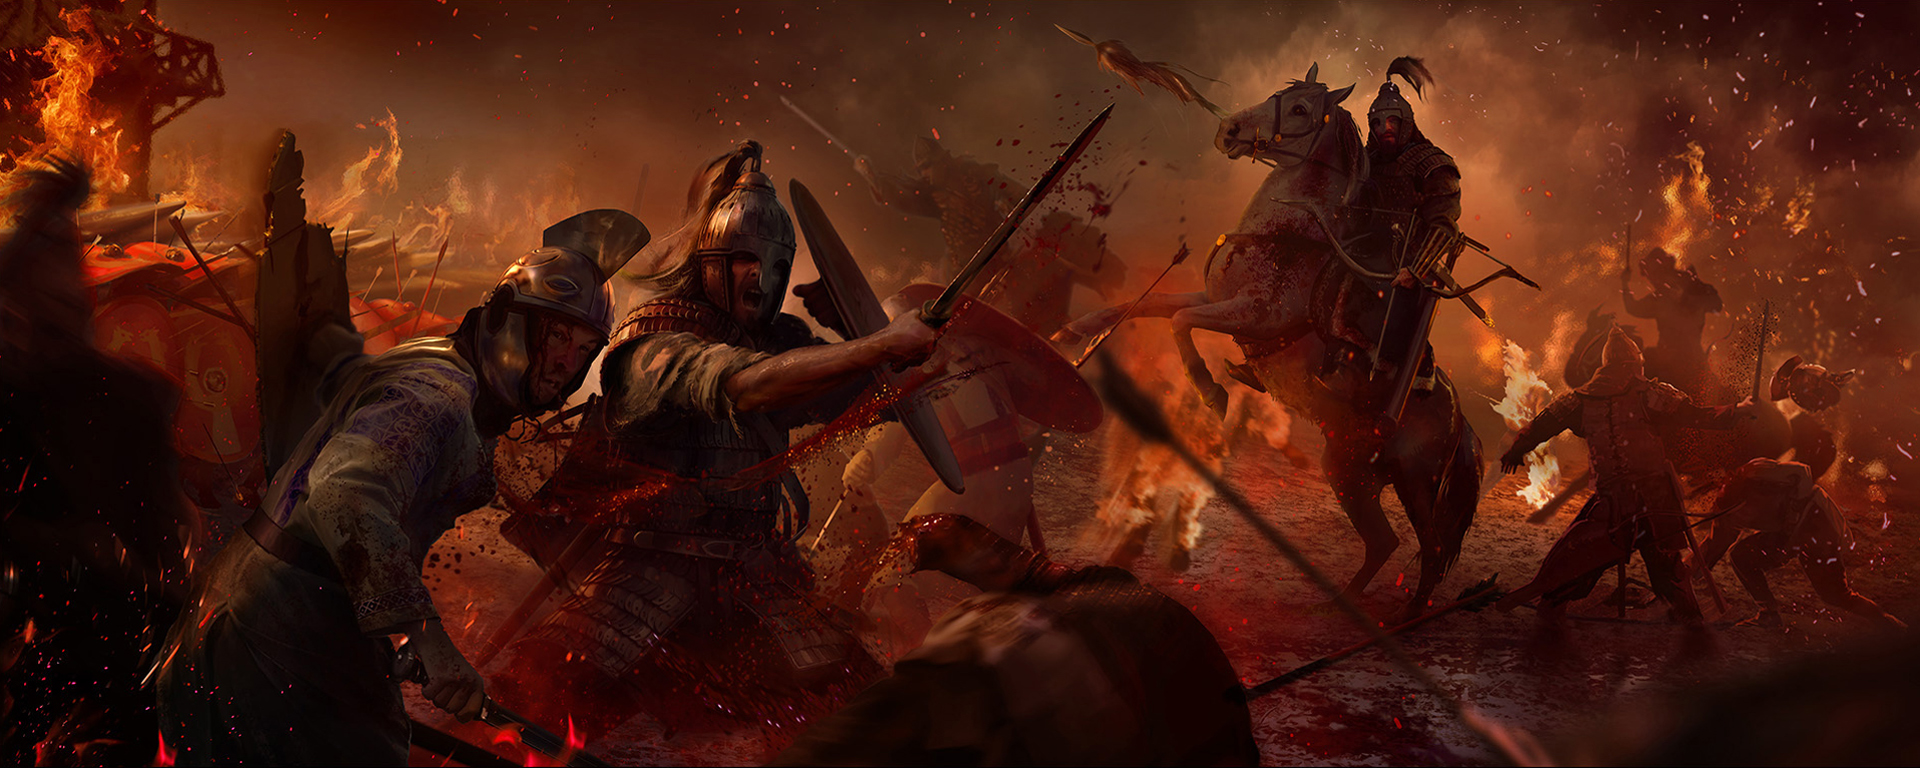 Video Game   Total War Attila Wallpaper 1920x768